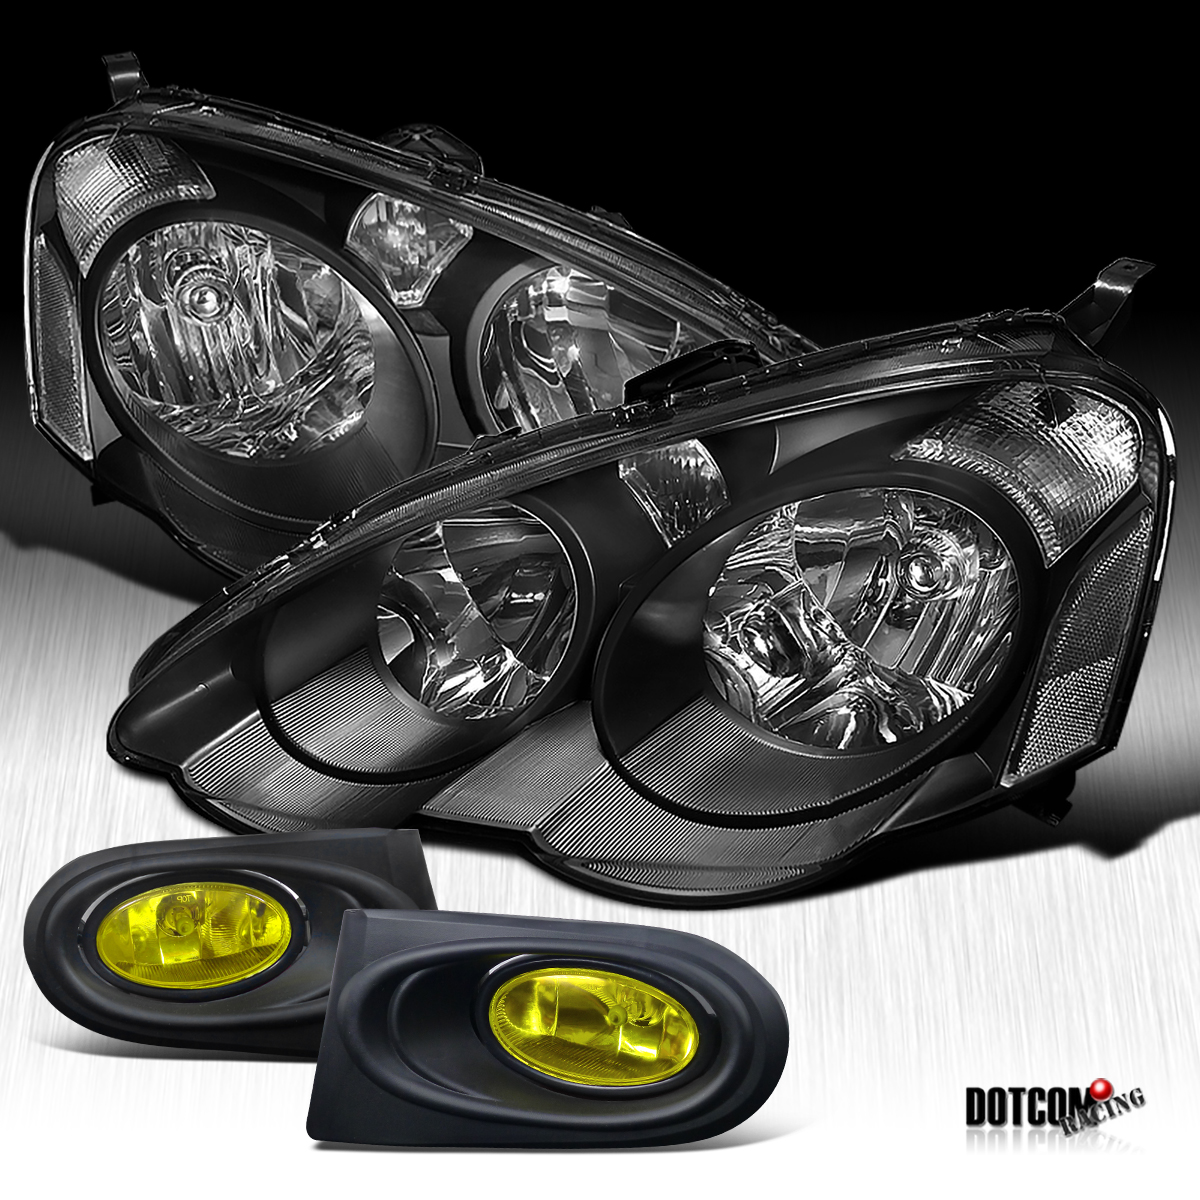 02 04 acura rsx dc5 head lights black bumper fog lamps yellow ebay. Black Bedroom Furniture Sets. Home Design Ideas